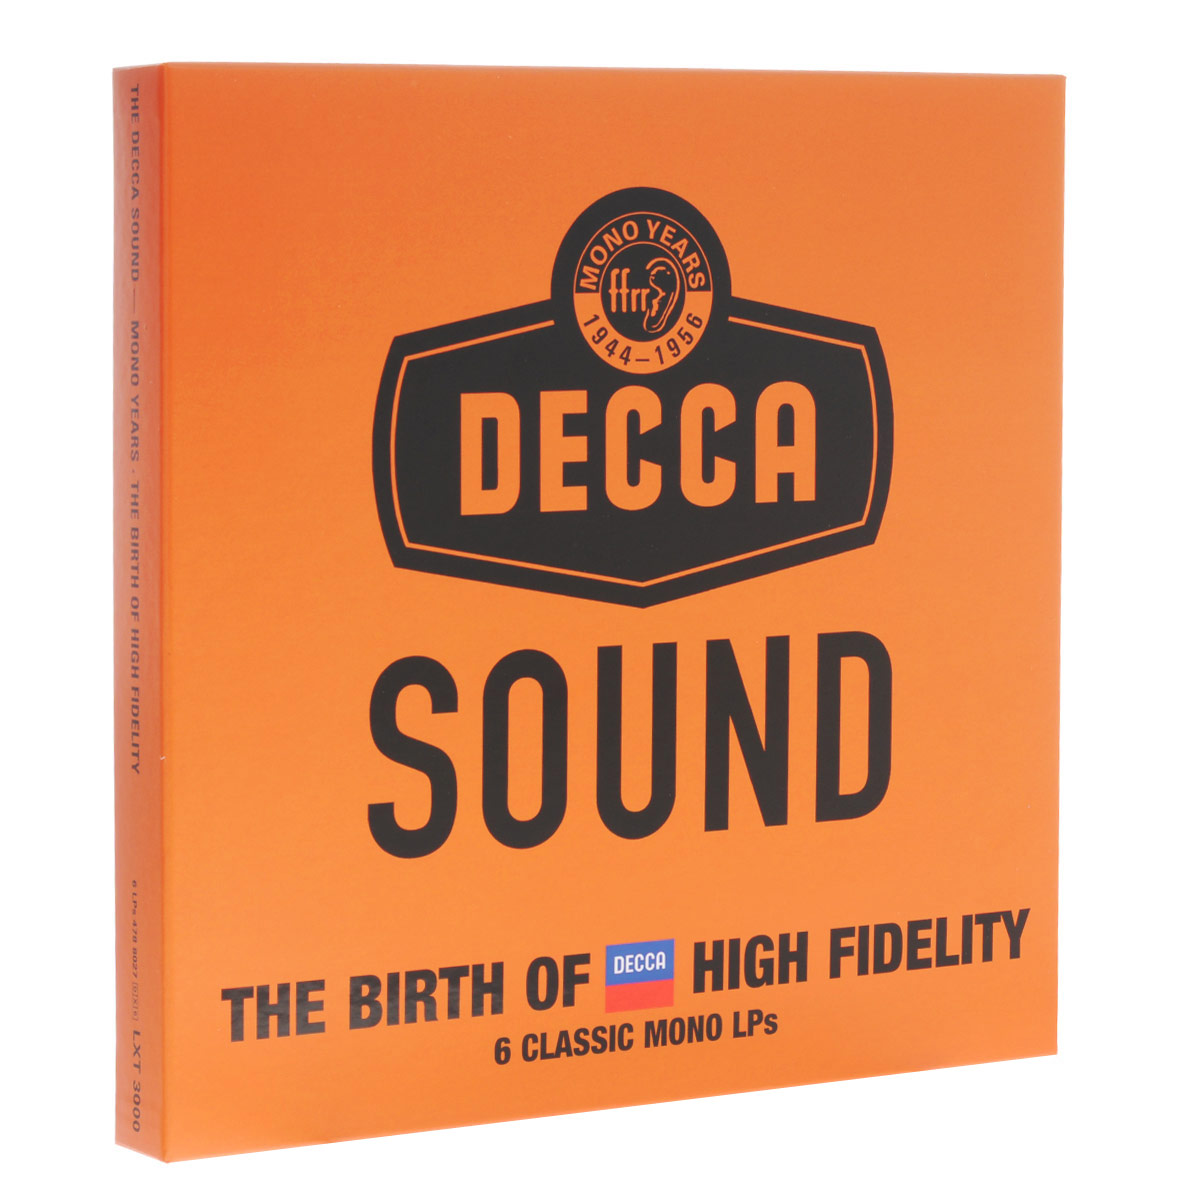 Зара Нельсова,Artur Balsam The Decca Sound - Mono Years. The Birth Of High Fidelity (Limited Edition) (6 LP) diana vreeland the modern woman the bazaar years 1936 1962